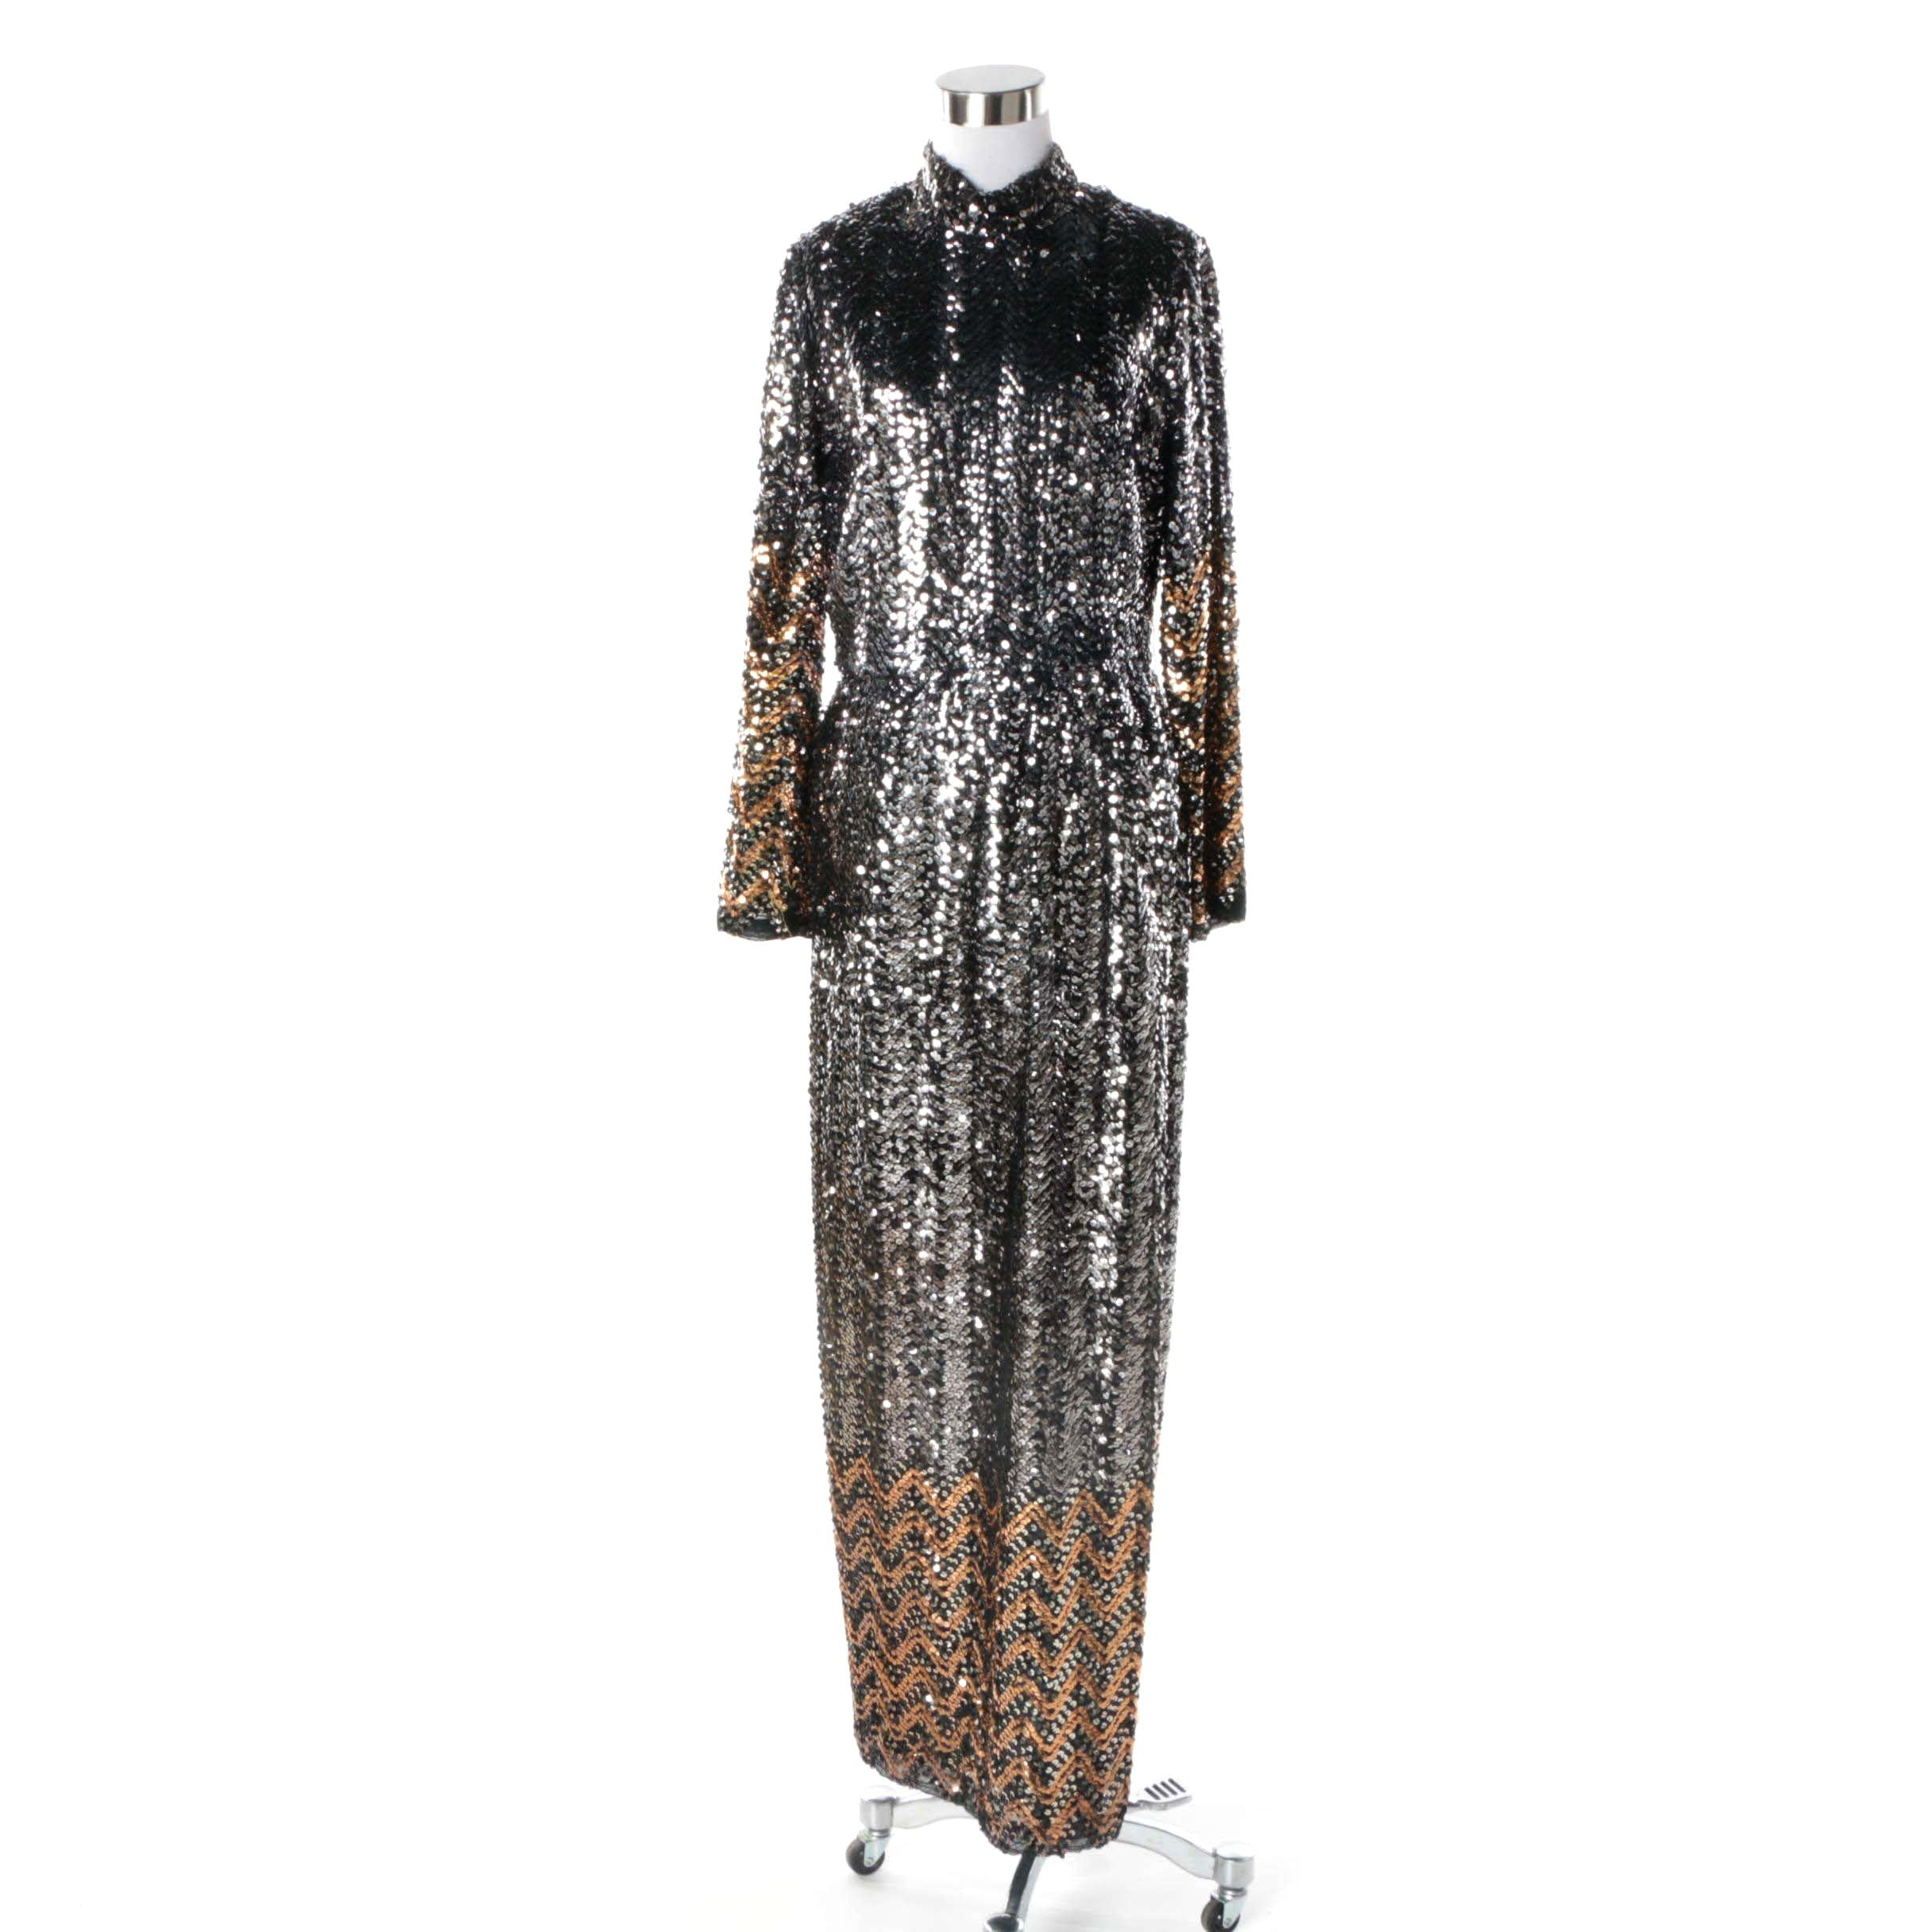 1970s Vintage Silver and Gold Fully Sequined Maxi Evening Dress